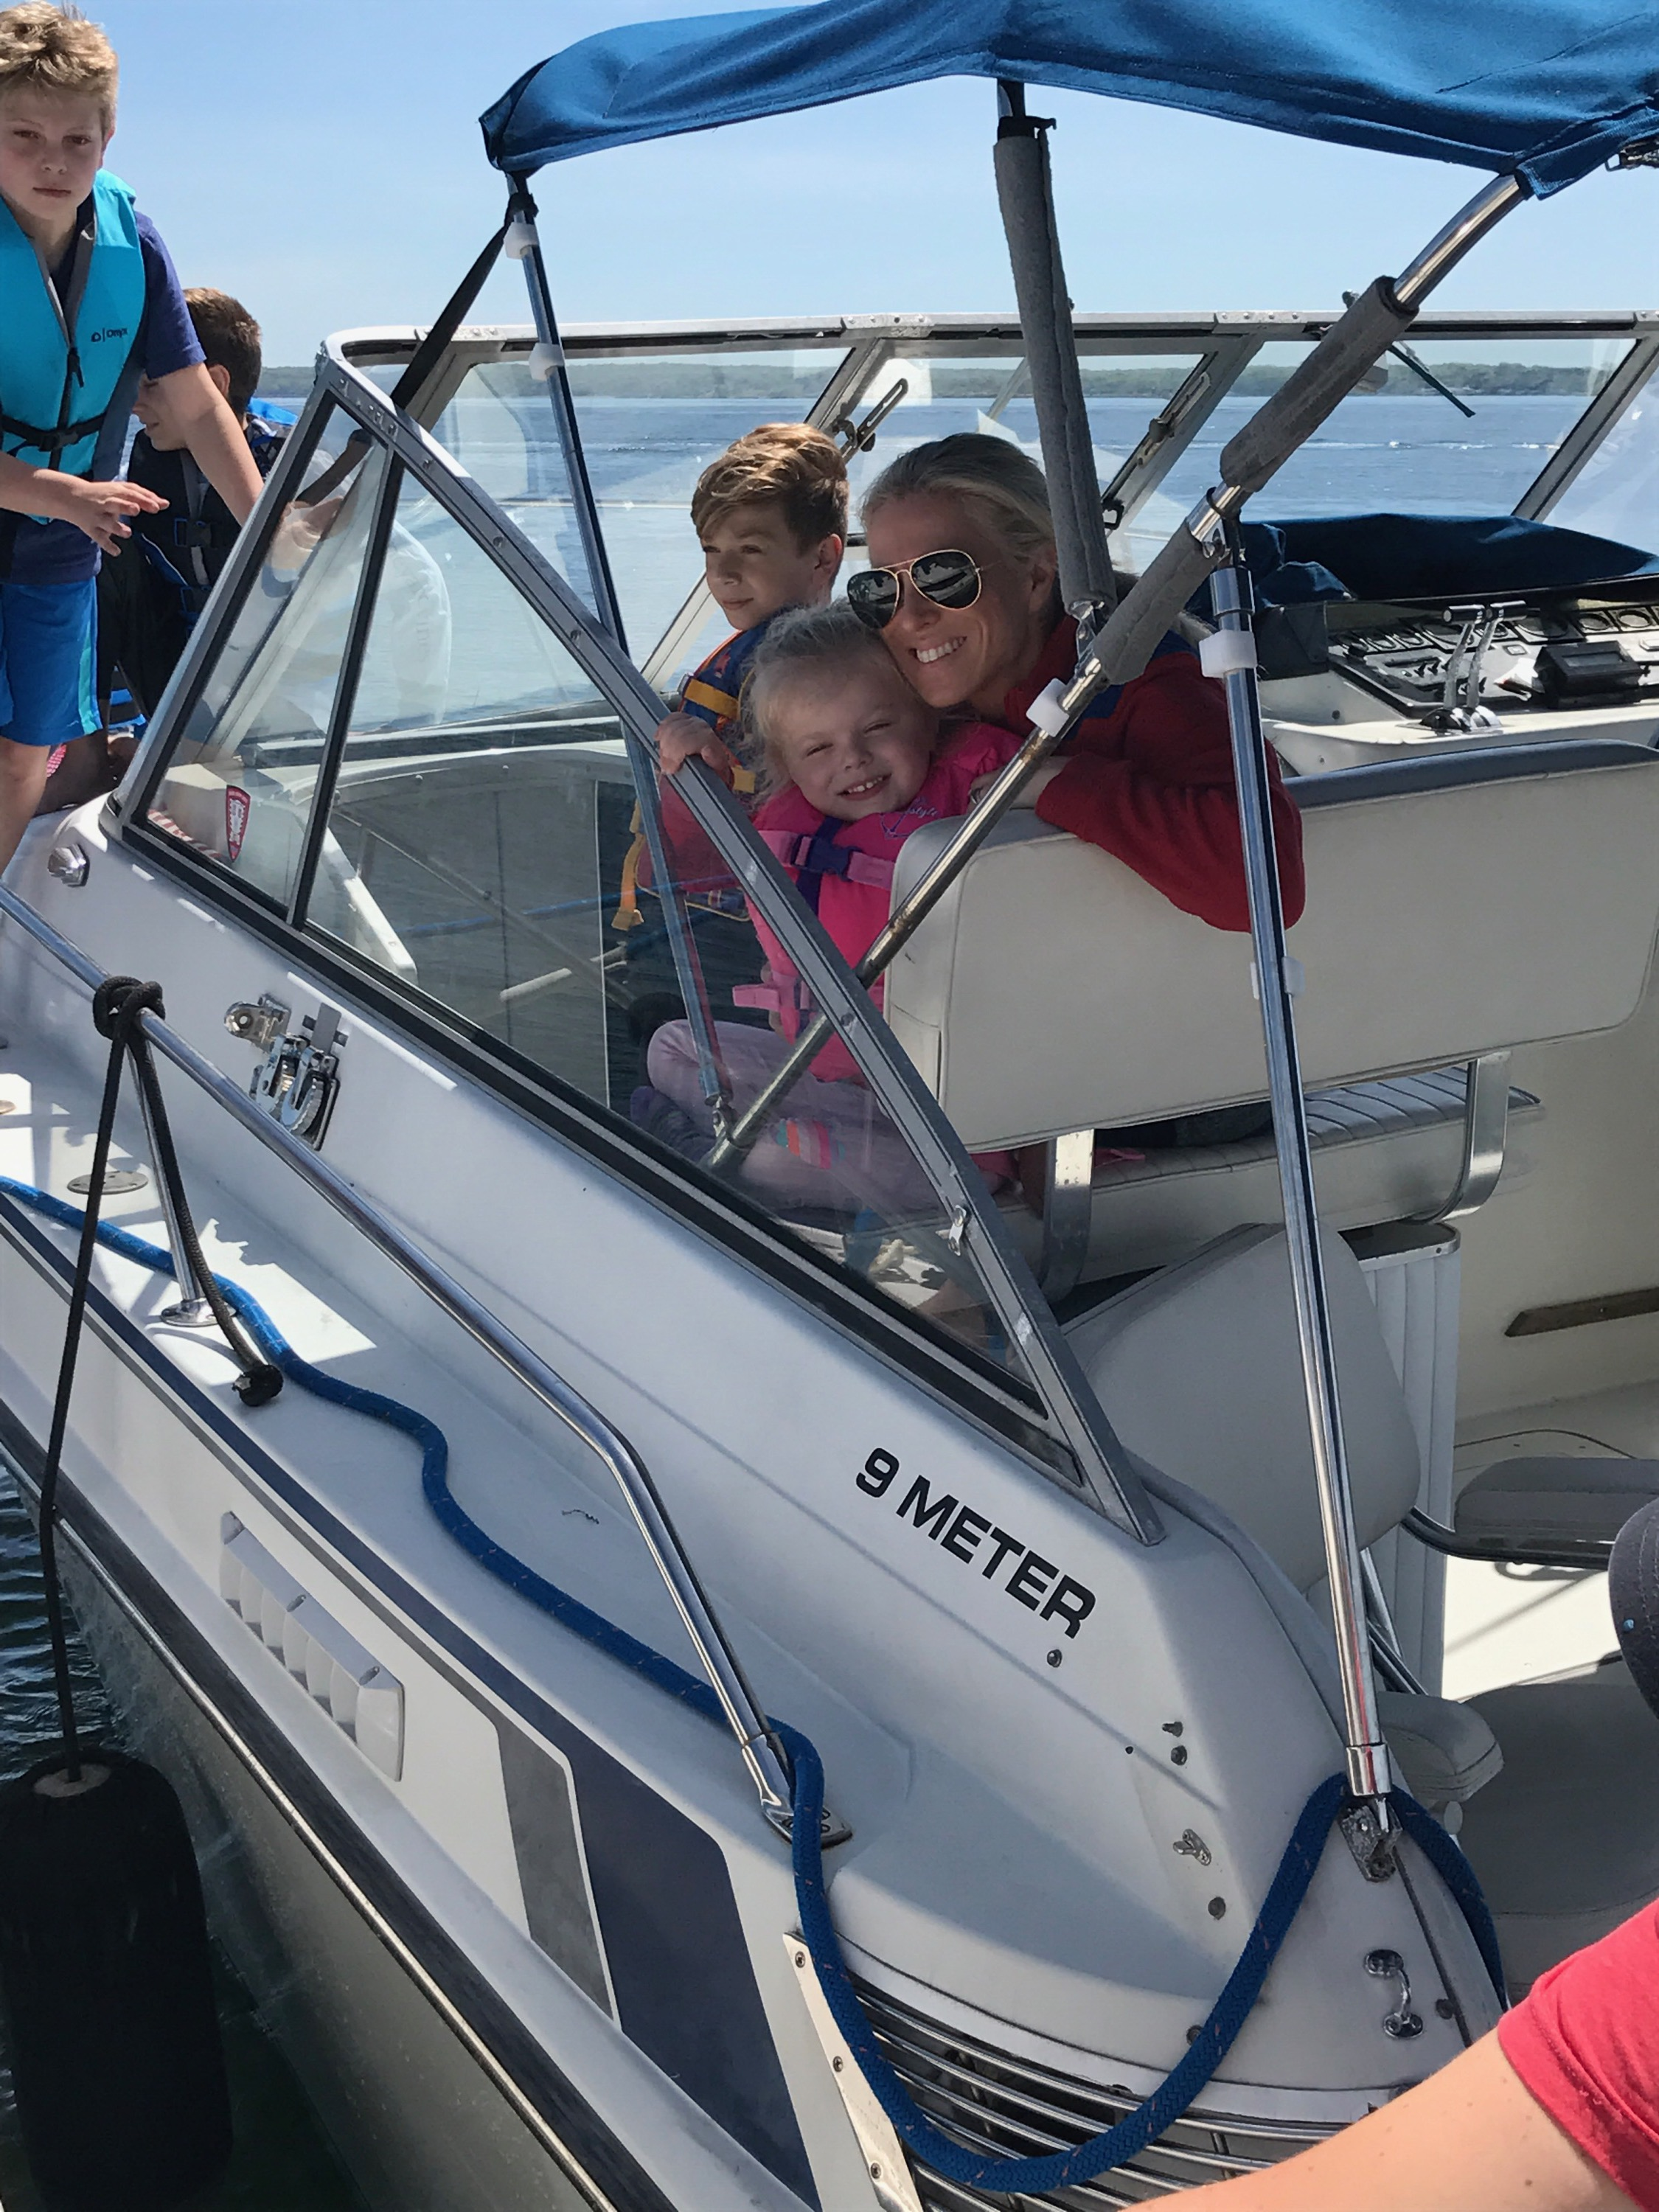 We had so much fun getting out on the water.